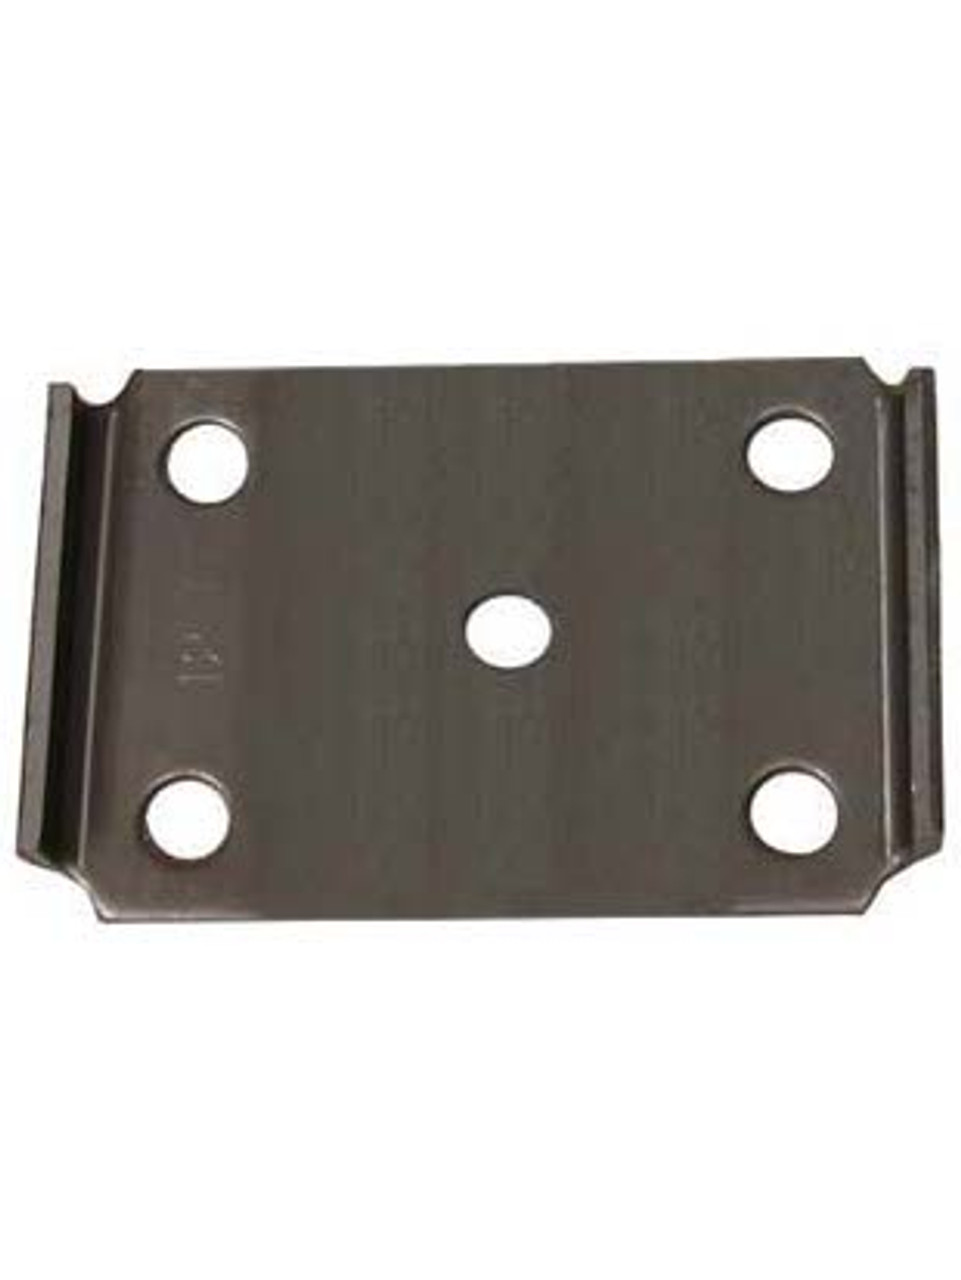 "AP32 --- Axle Plate for 2"" Wide Springs & 3"" Round Axles"